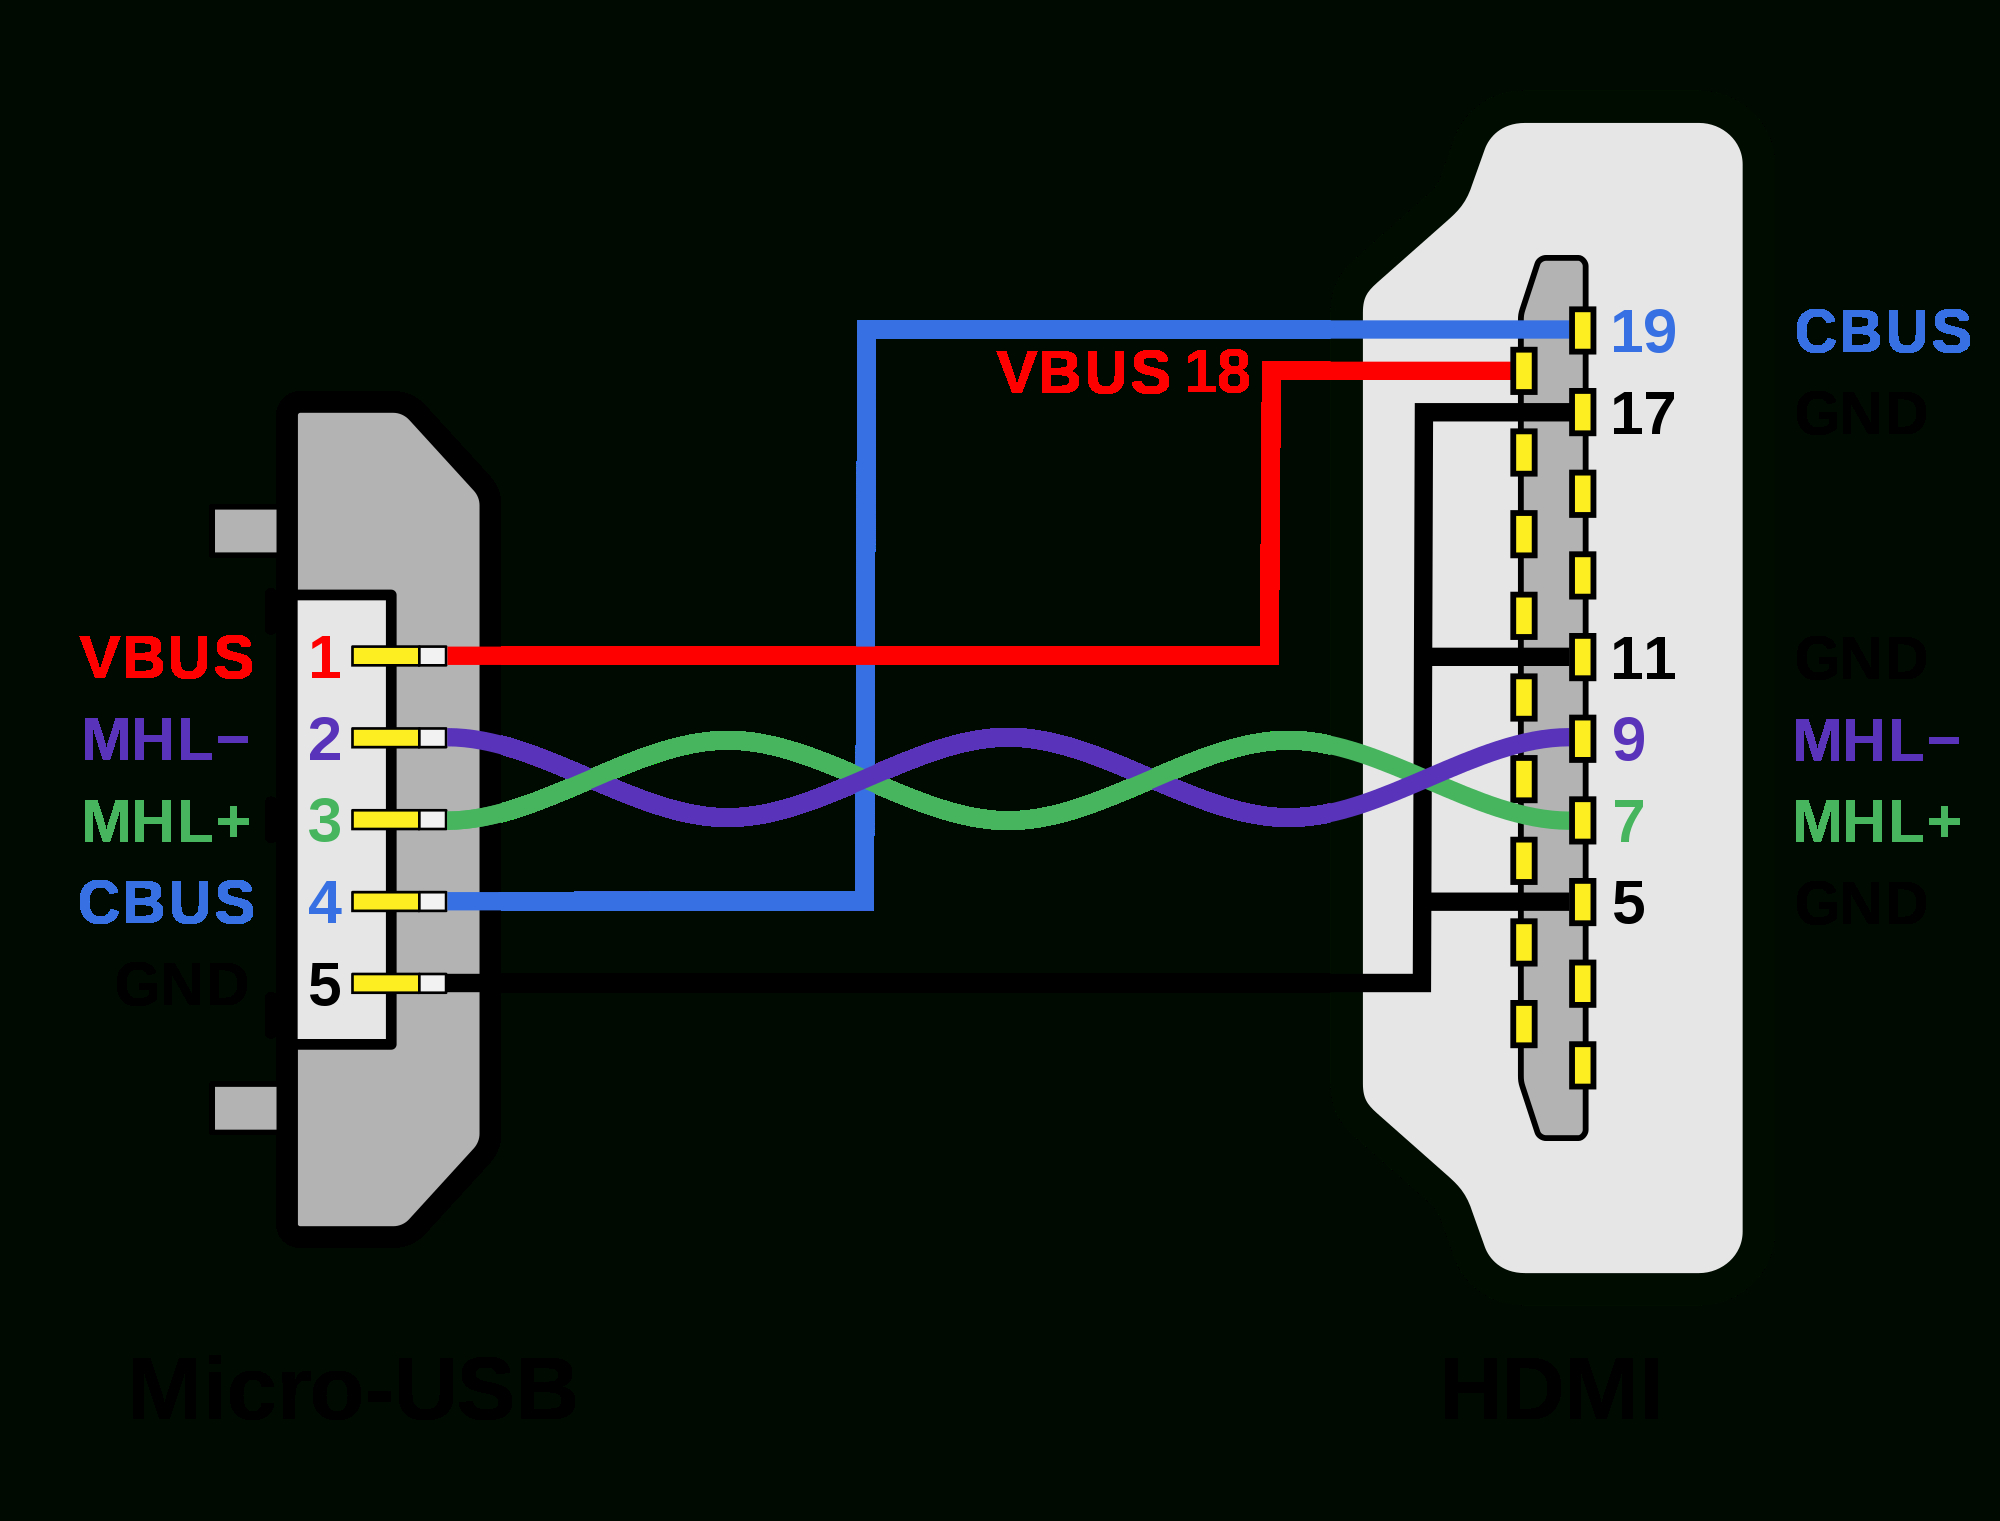 File:mhl Micro-Usb - Hdmi Wiring Diagram.svg - Wikimedia Commons - Micro-B Usb Vs Otg Wiring Diagram